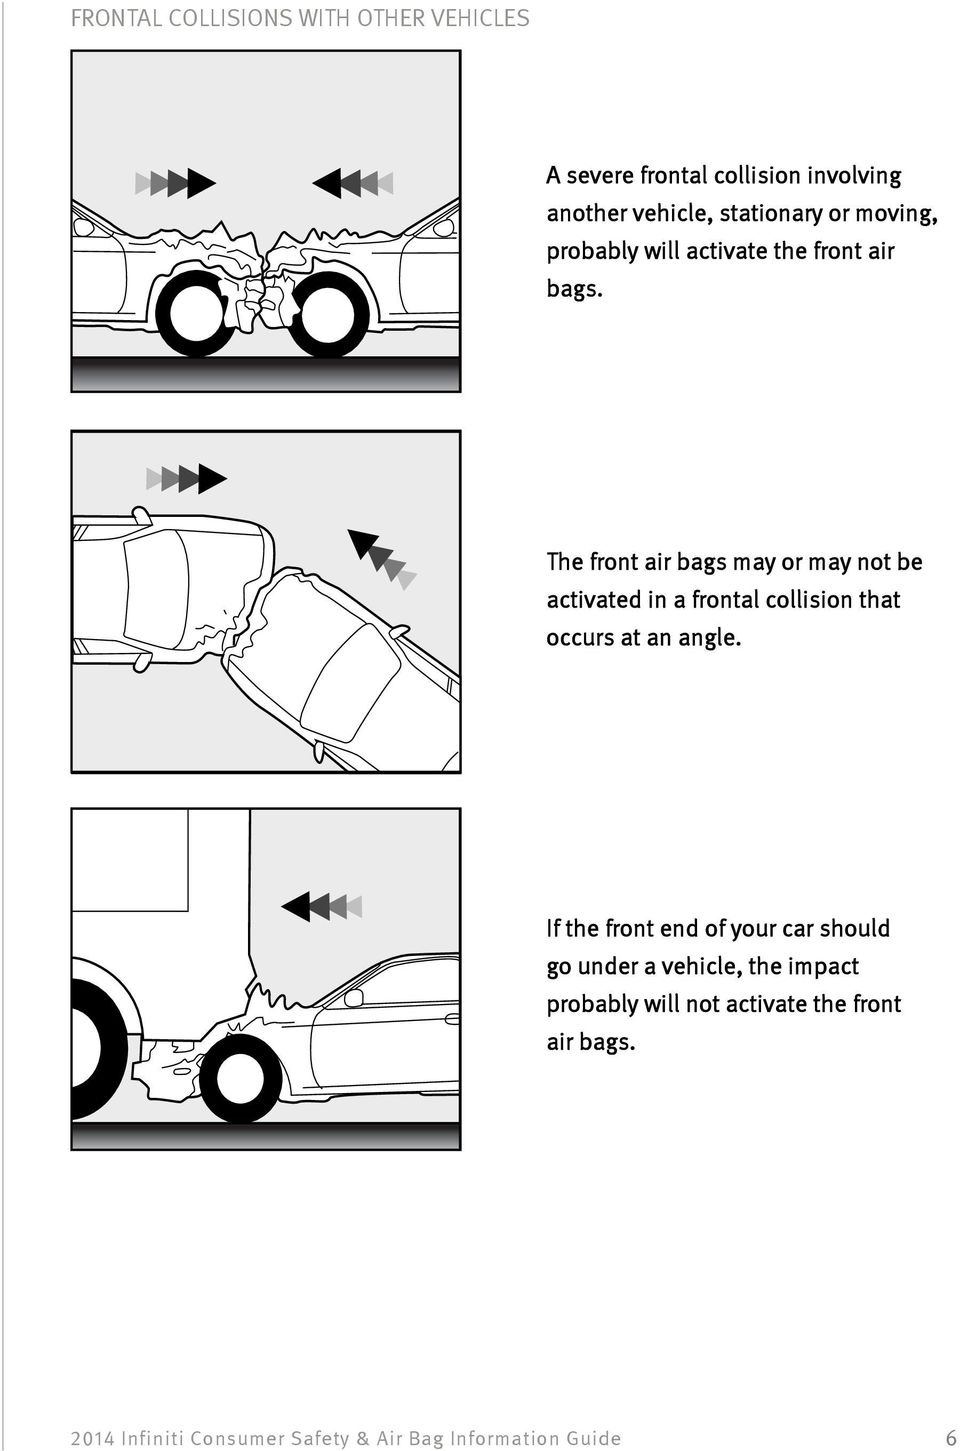 The front air bags may or may not be activated in a frontal collision that occurs at an angle.